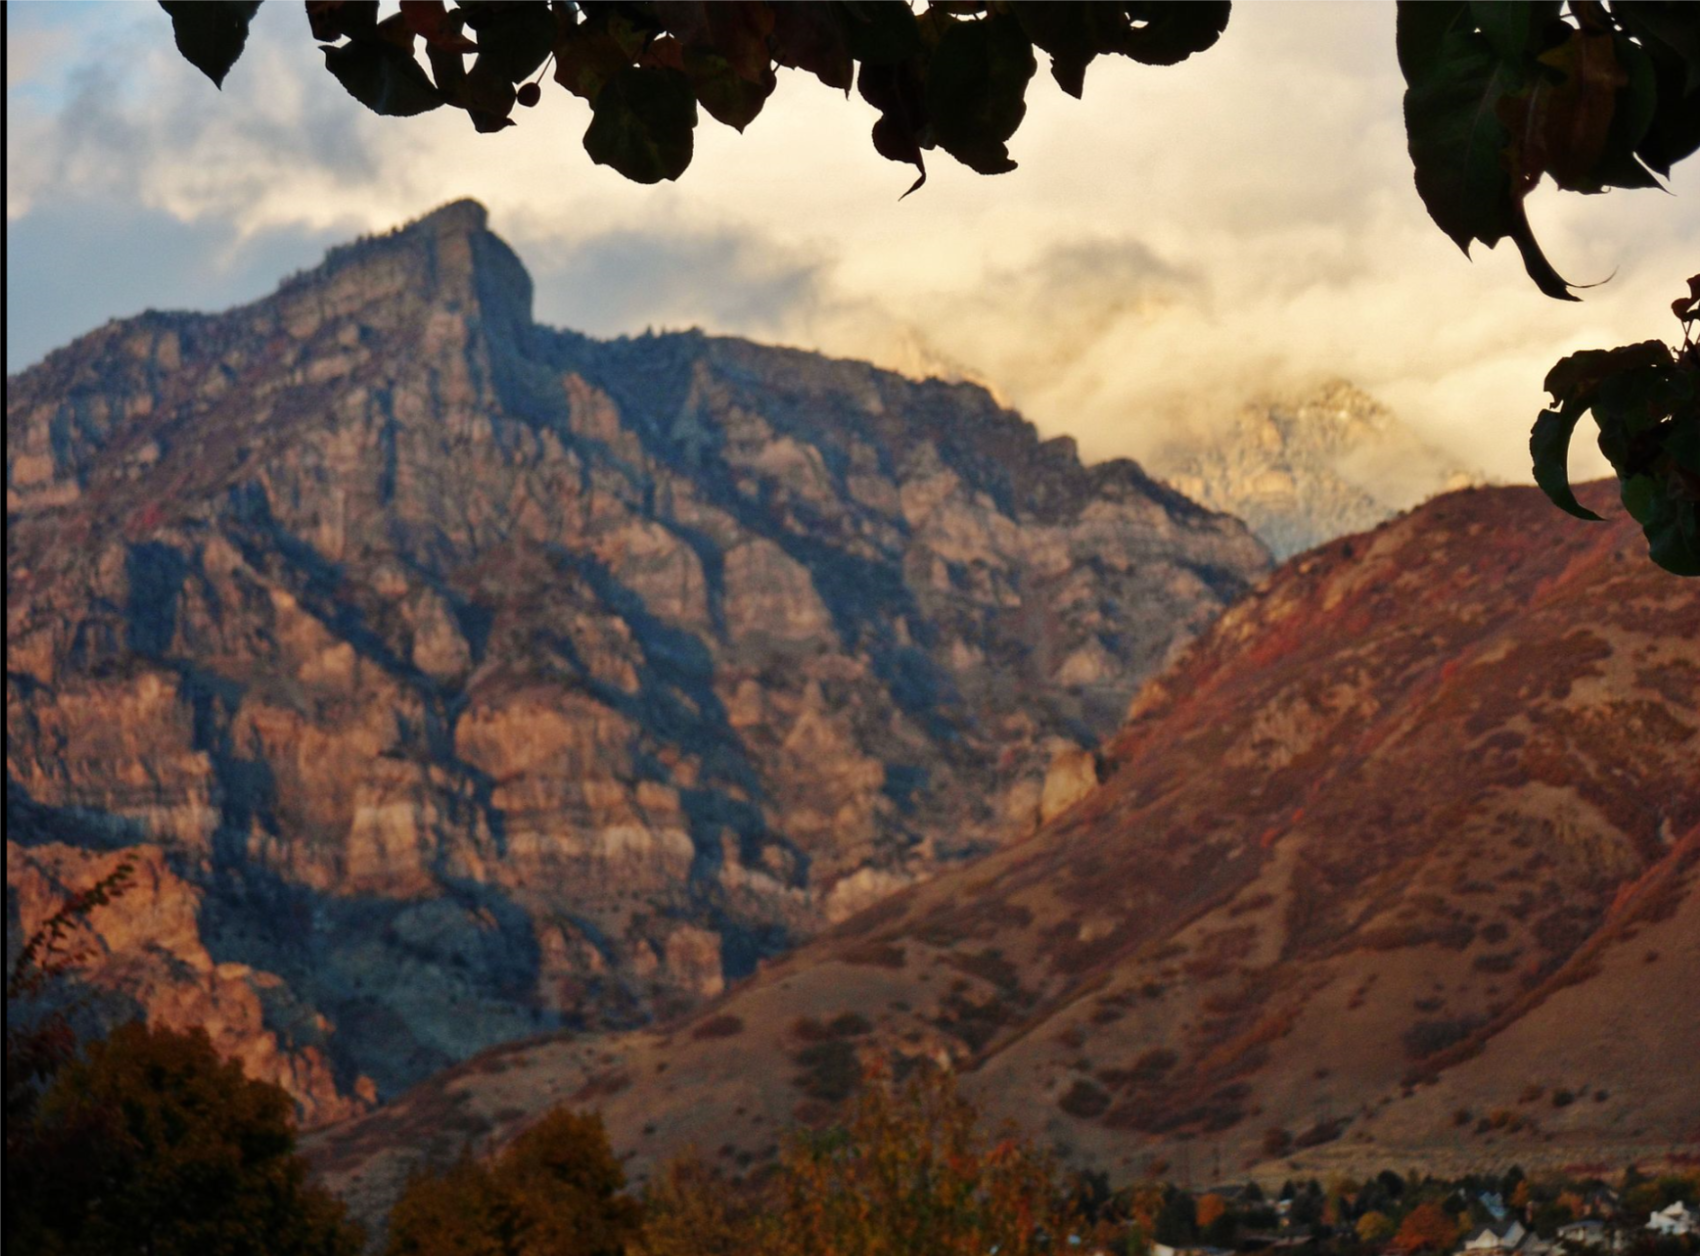 Squaw Peak over Rock Canyon at sunset as seen from BYU campus. The Wasatch were great company.